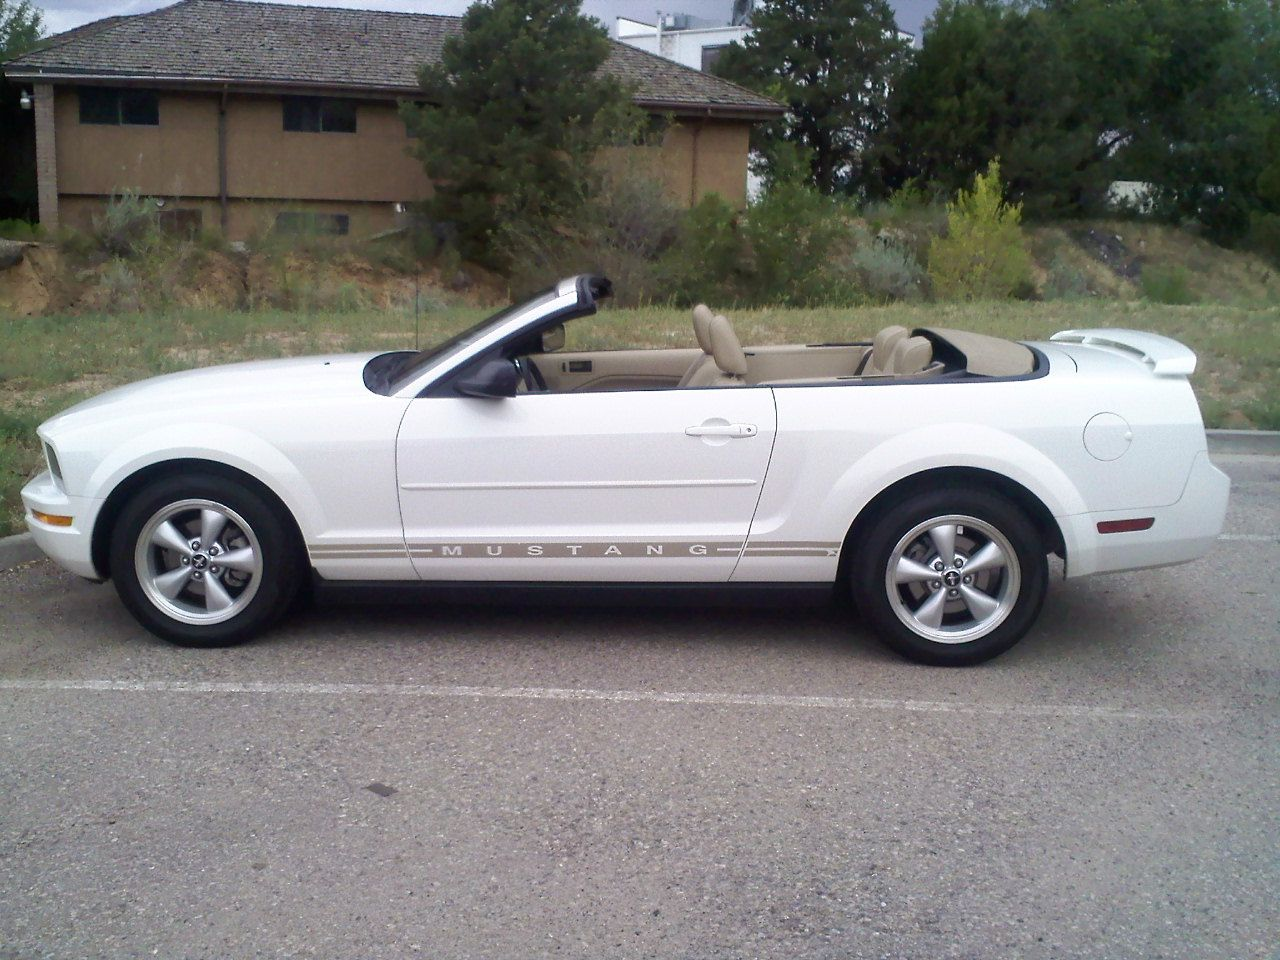 2006 Ford Mustang Pictures Cargurus 2006 Ford Mustang Ford Mustang Mustang